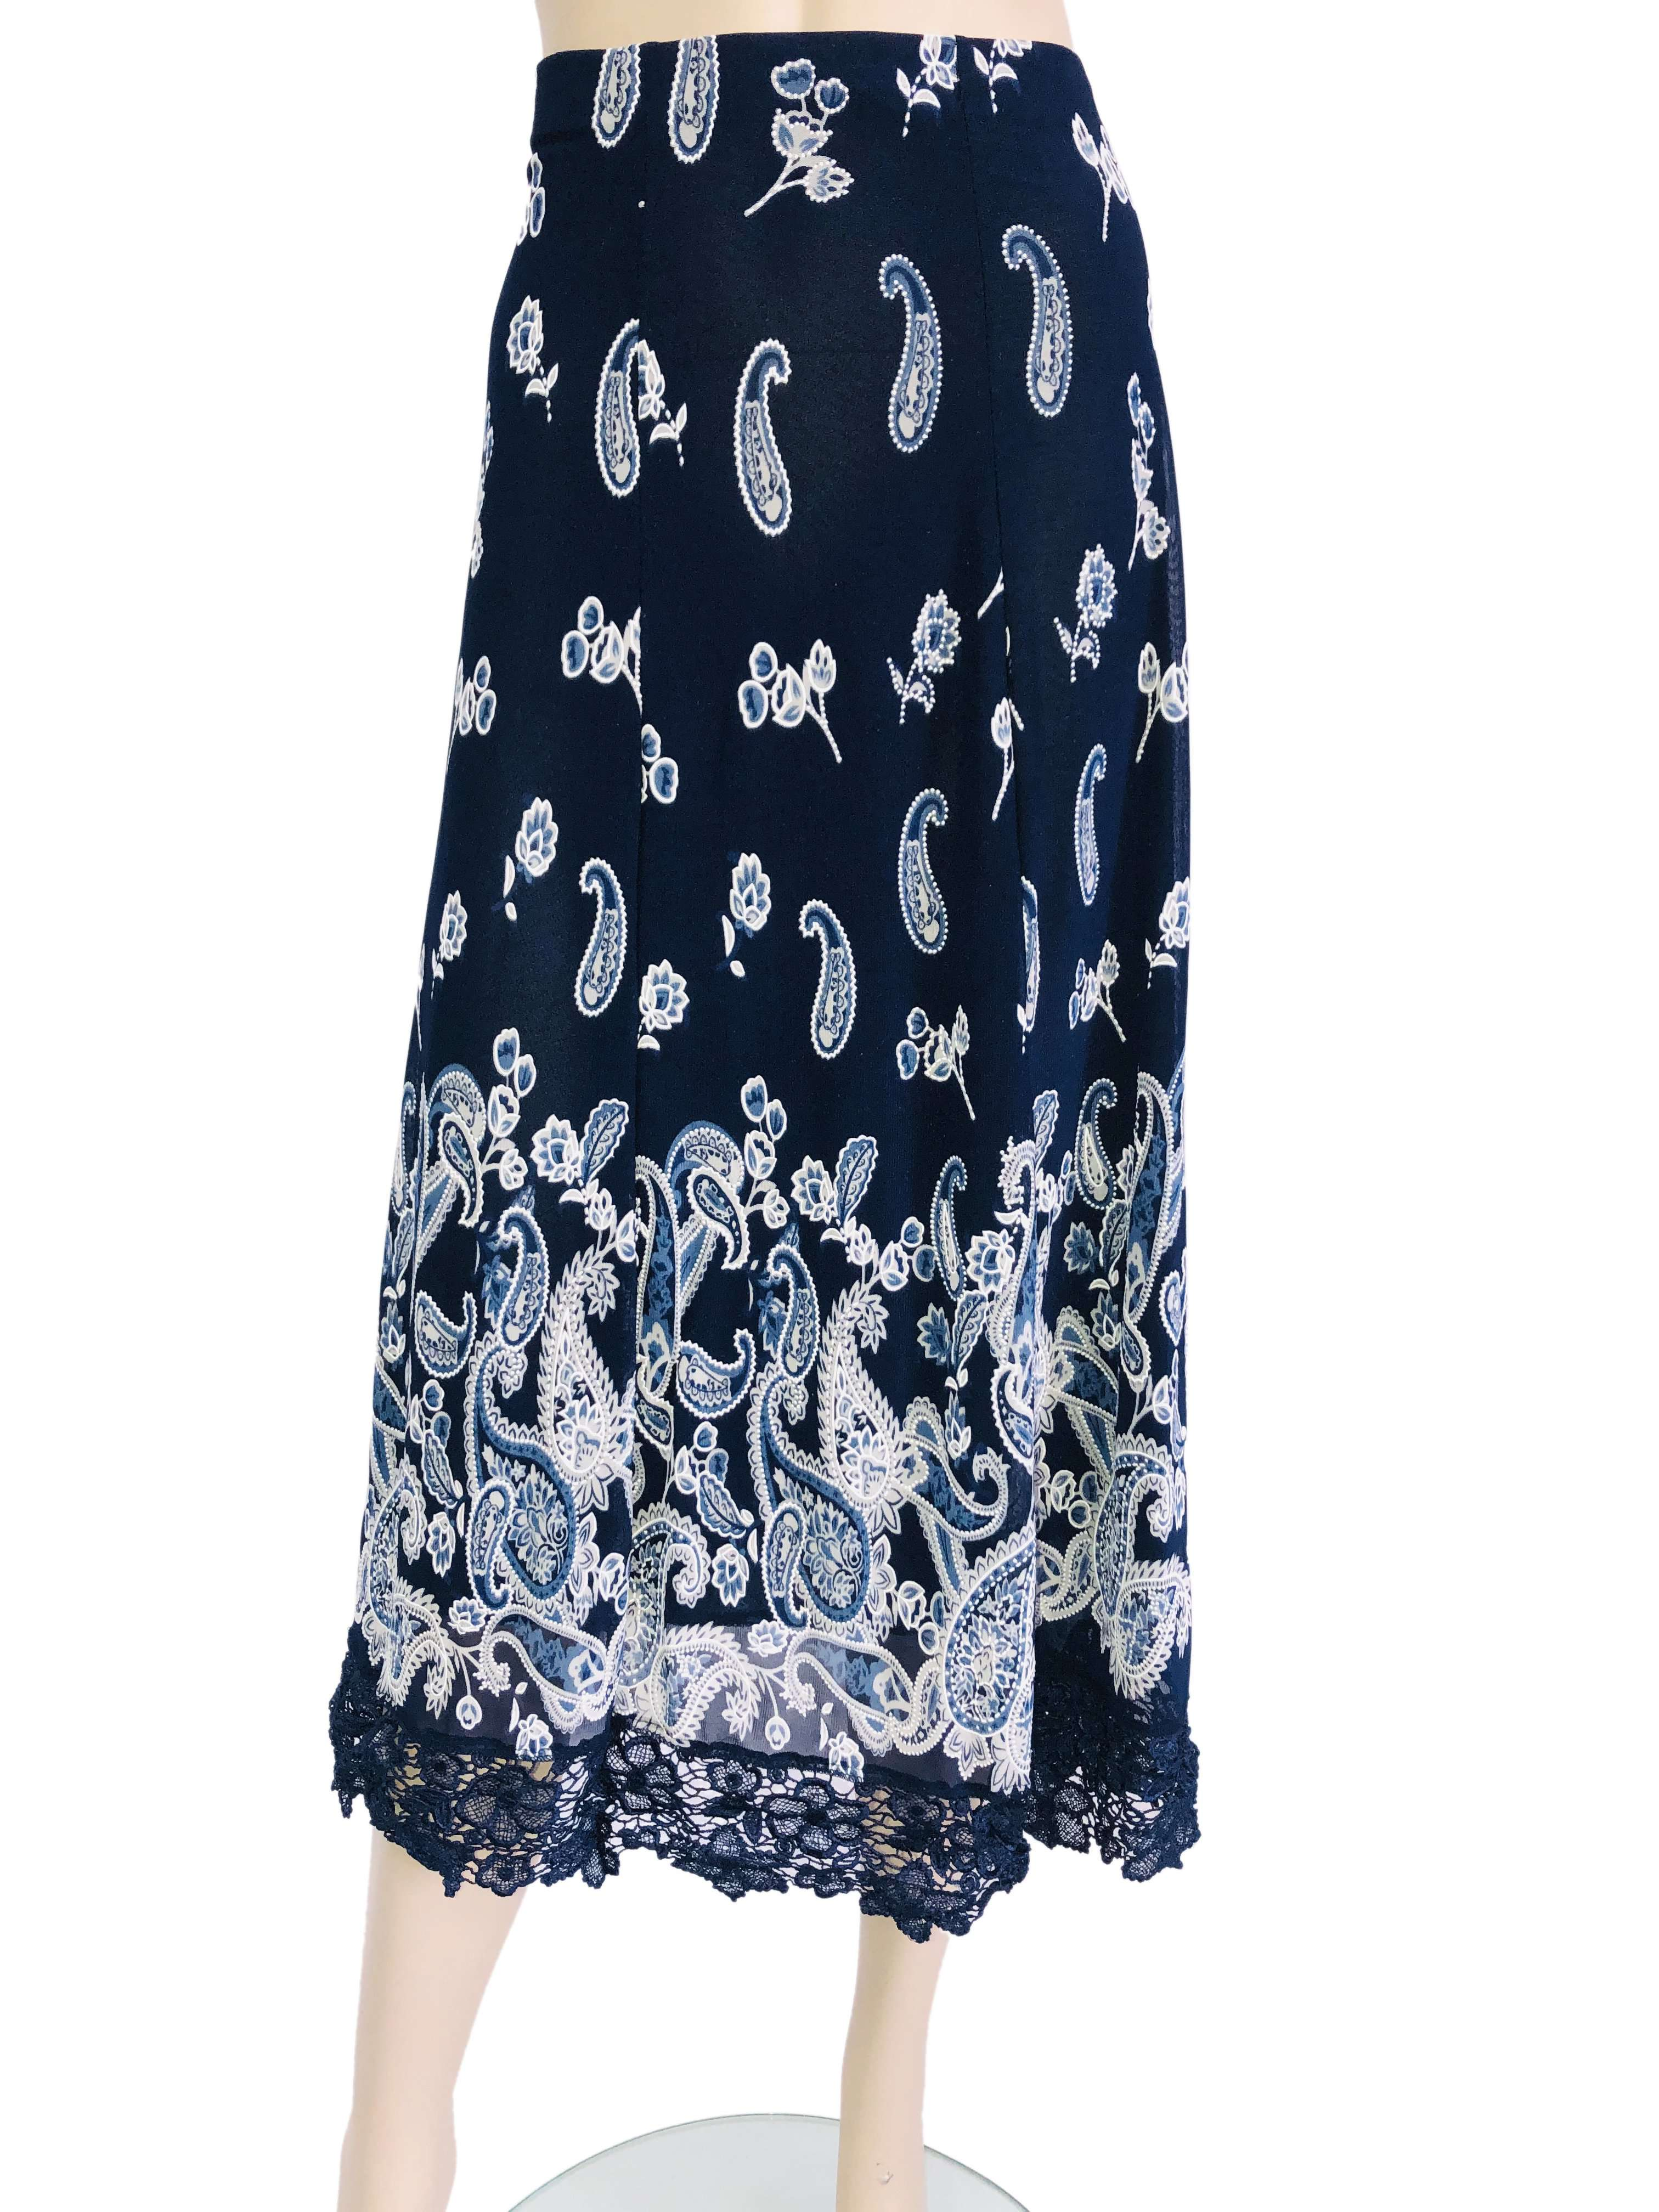 Skirts for Women Navy Print Fully lined Extra Large sizes Quality Fit - Yvonne Marie - Yvonne Marie